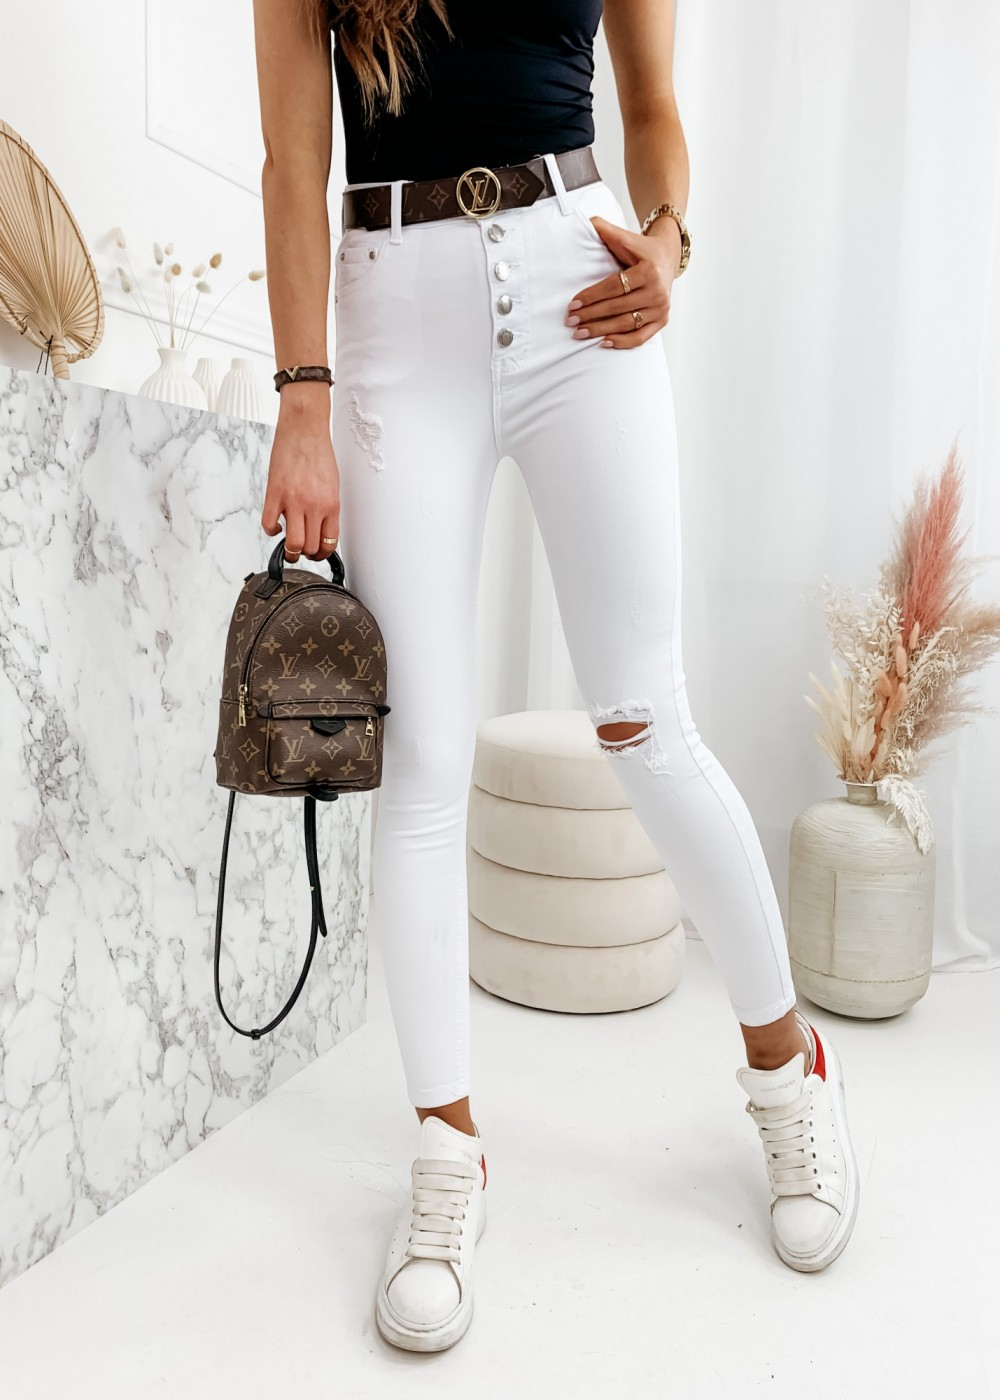 JEANSY CLASSIC - white